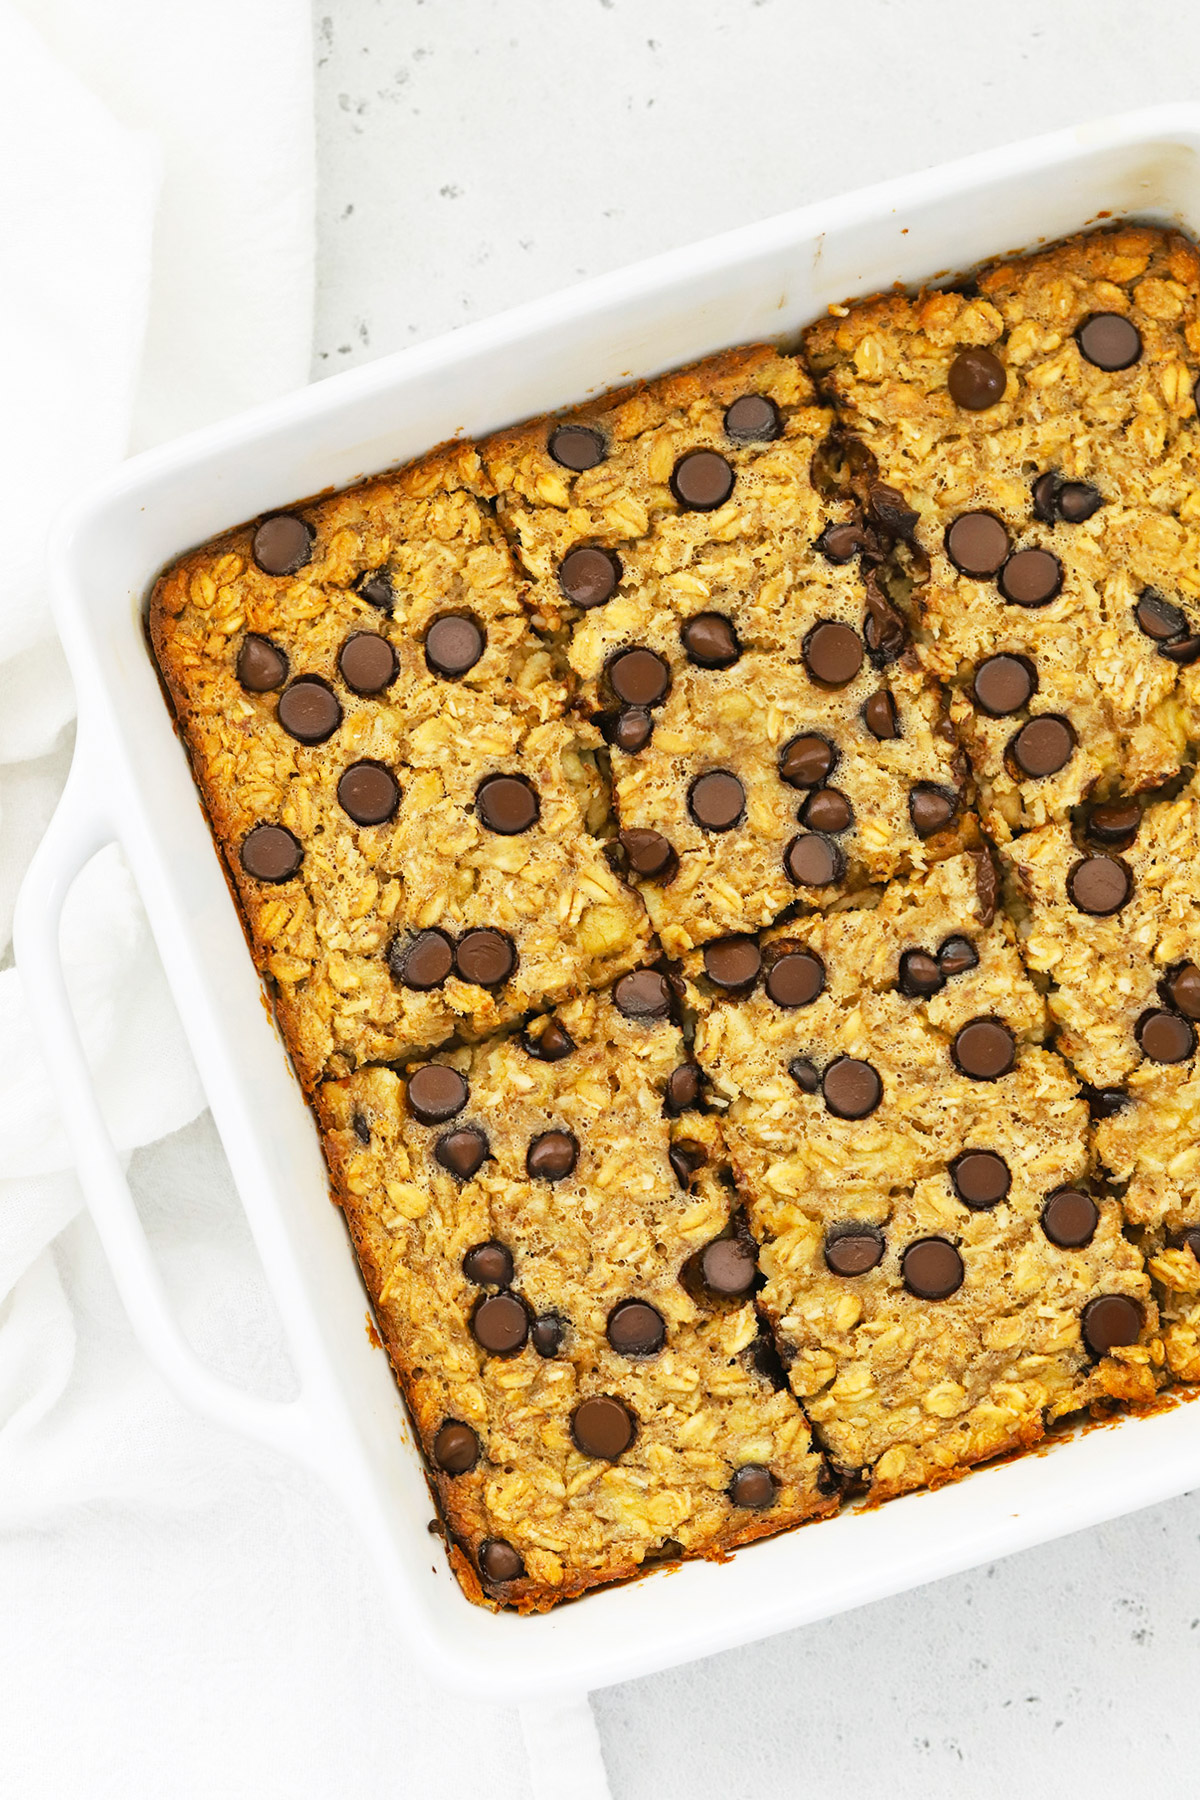 Overhead view of a pan of Chunky Monkey Baked Oatmeal sliced and ready to serve.